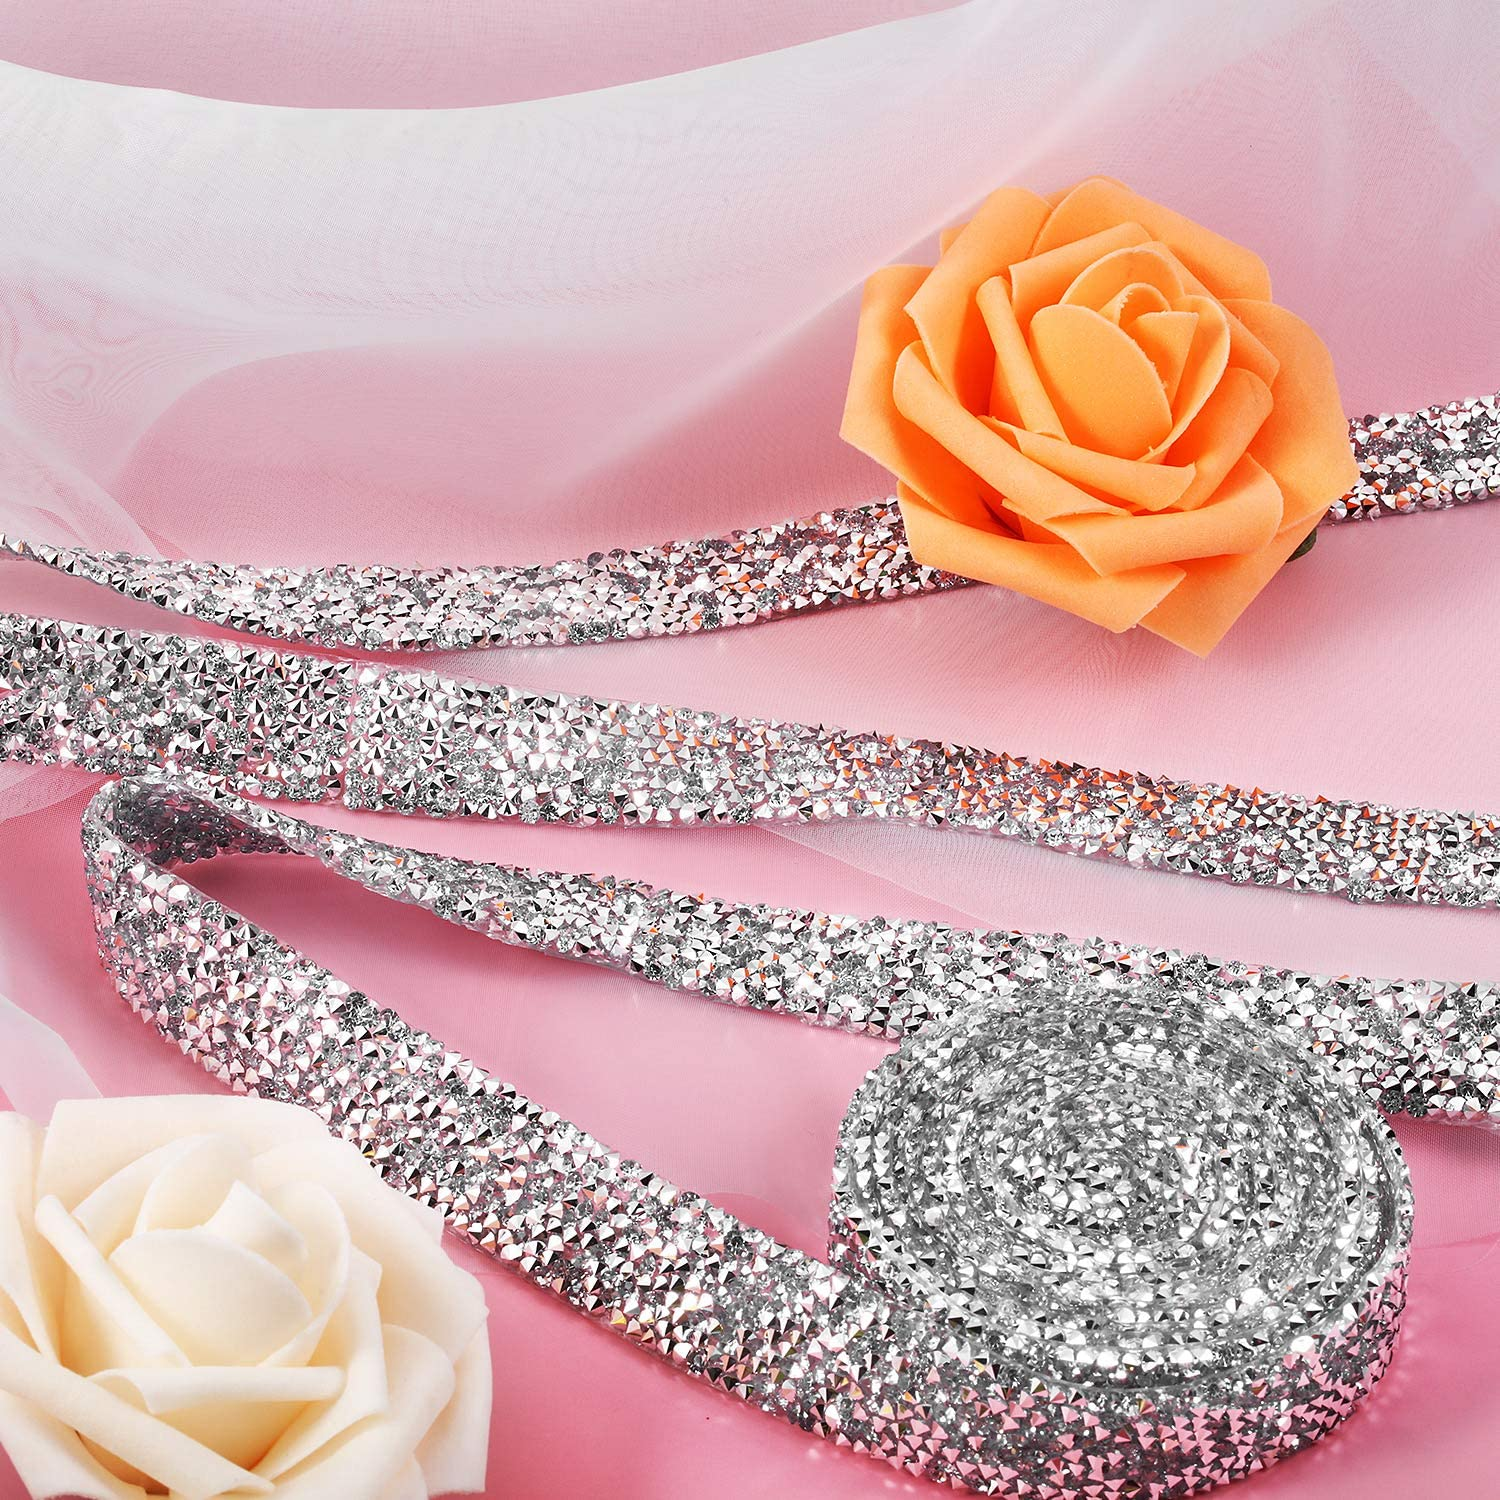 Crystal Rhinestone Ribbon 3 Yards Diamond Sparkling Bling Ribbons Roll Banding Belt Wrap for Wedding Cakes Birthday Crafts Decorations 0.59 Inch, Clear